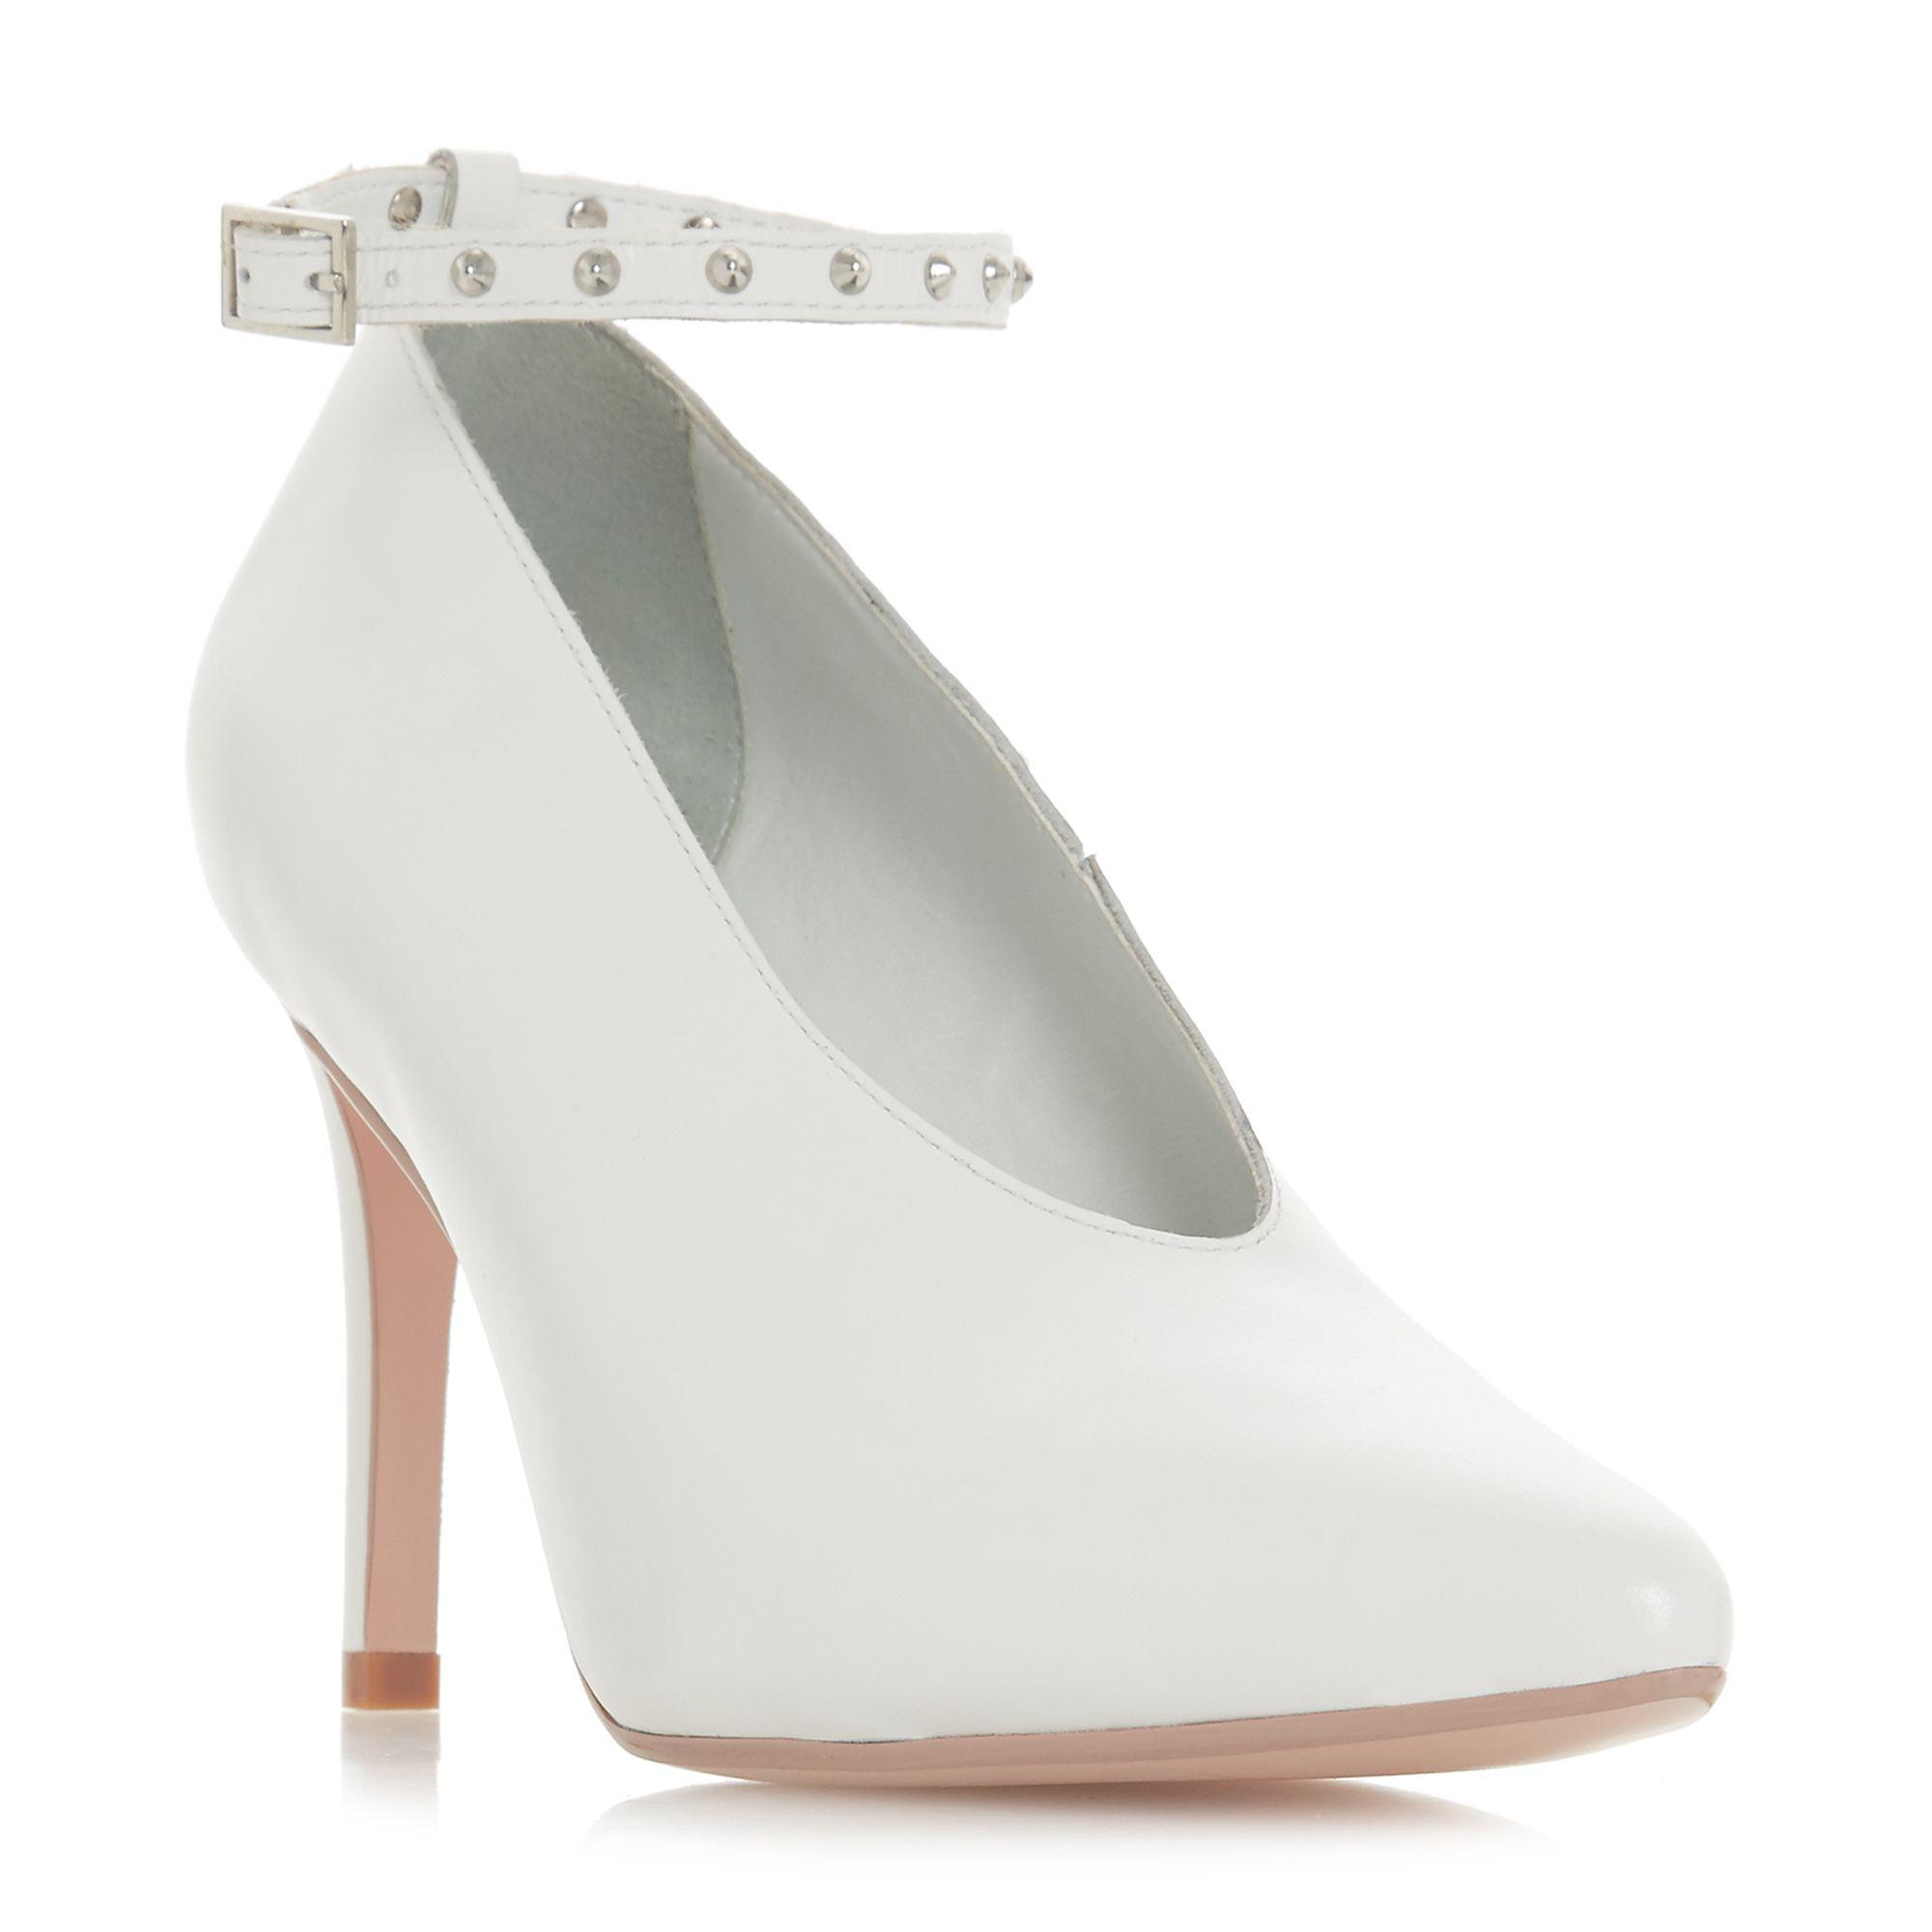 f71a2b74faa Dune White Leather  ara  High Stiletto Heel Court Shoes in White - Lyst